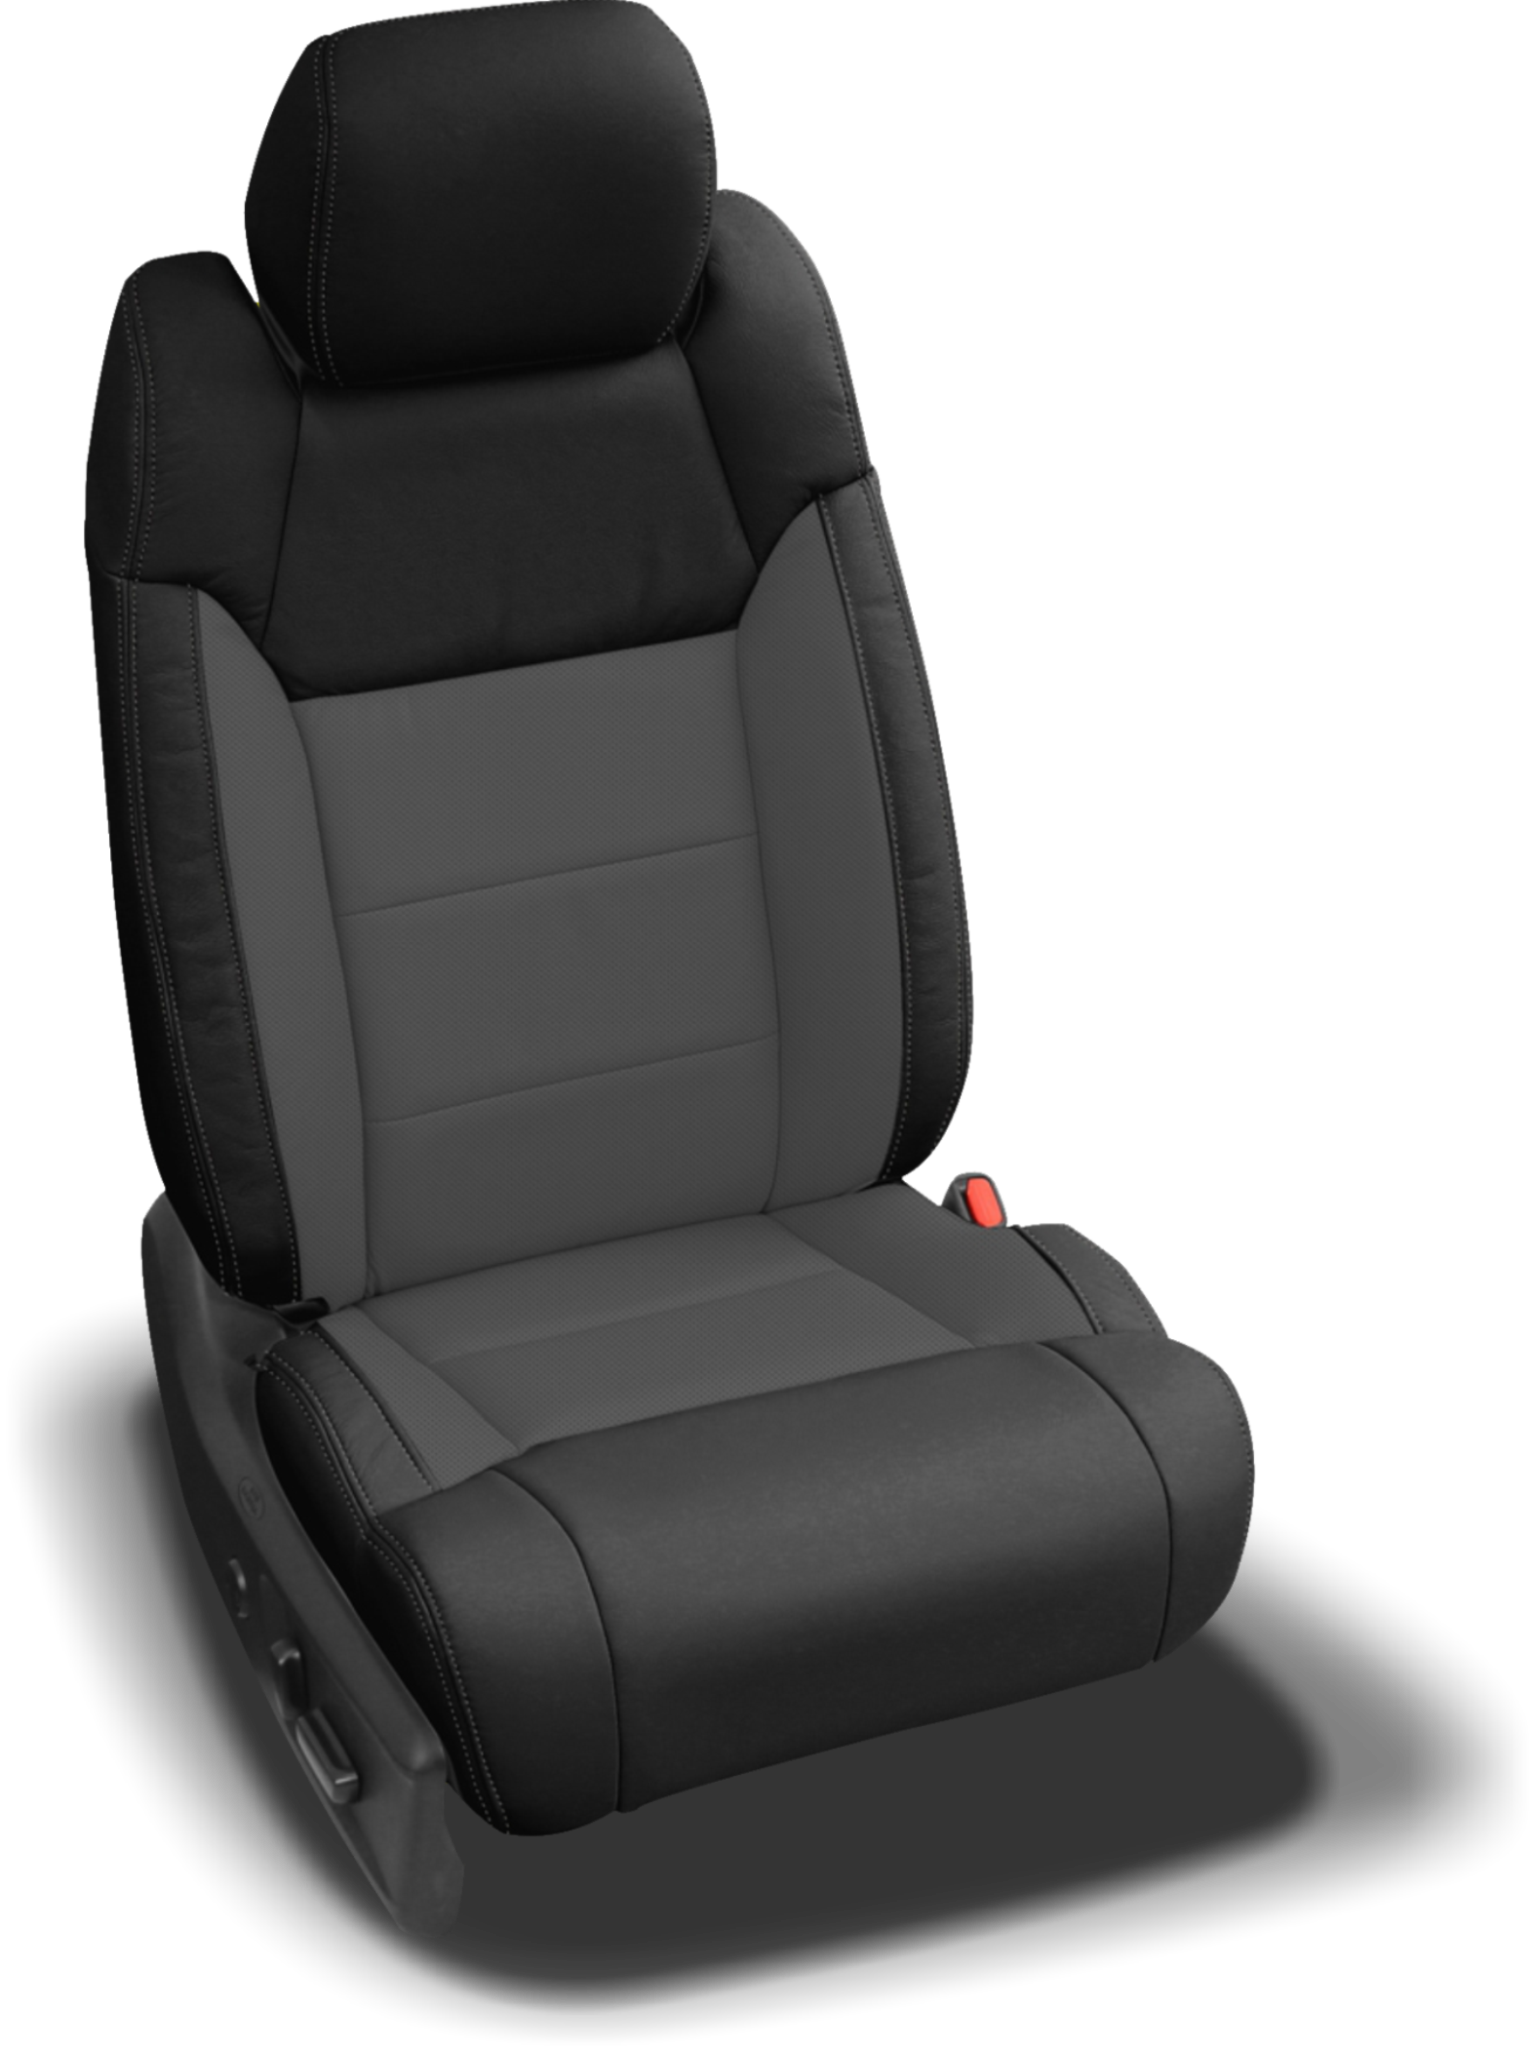 custom car upholstery automotive seat reupholstery service. Black Bedroom Furniture Sets. Home Design Ideas